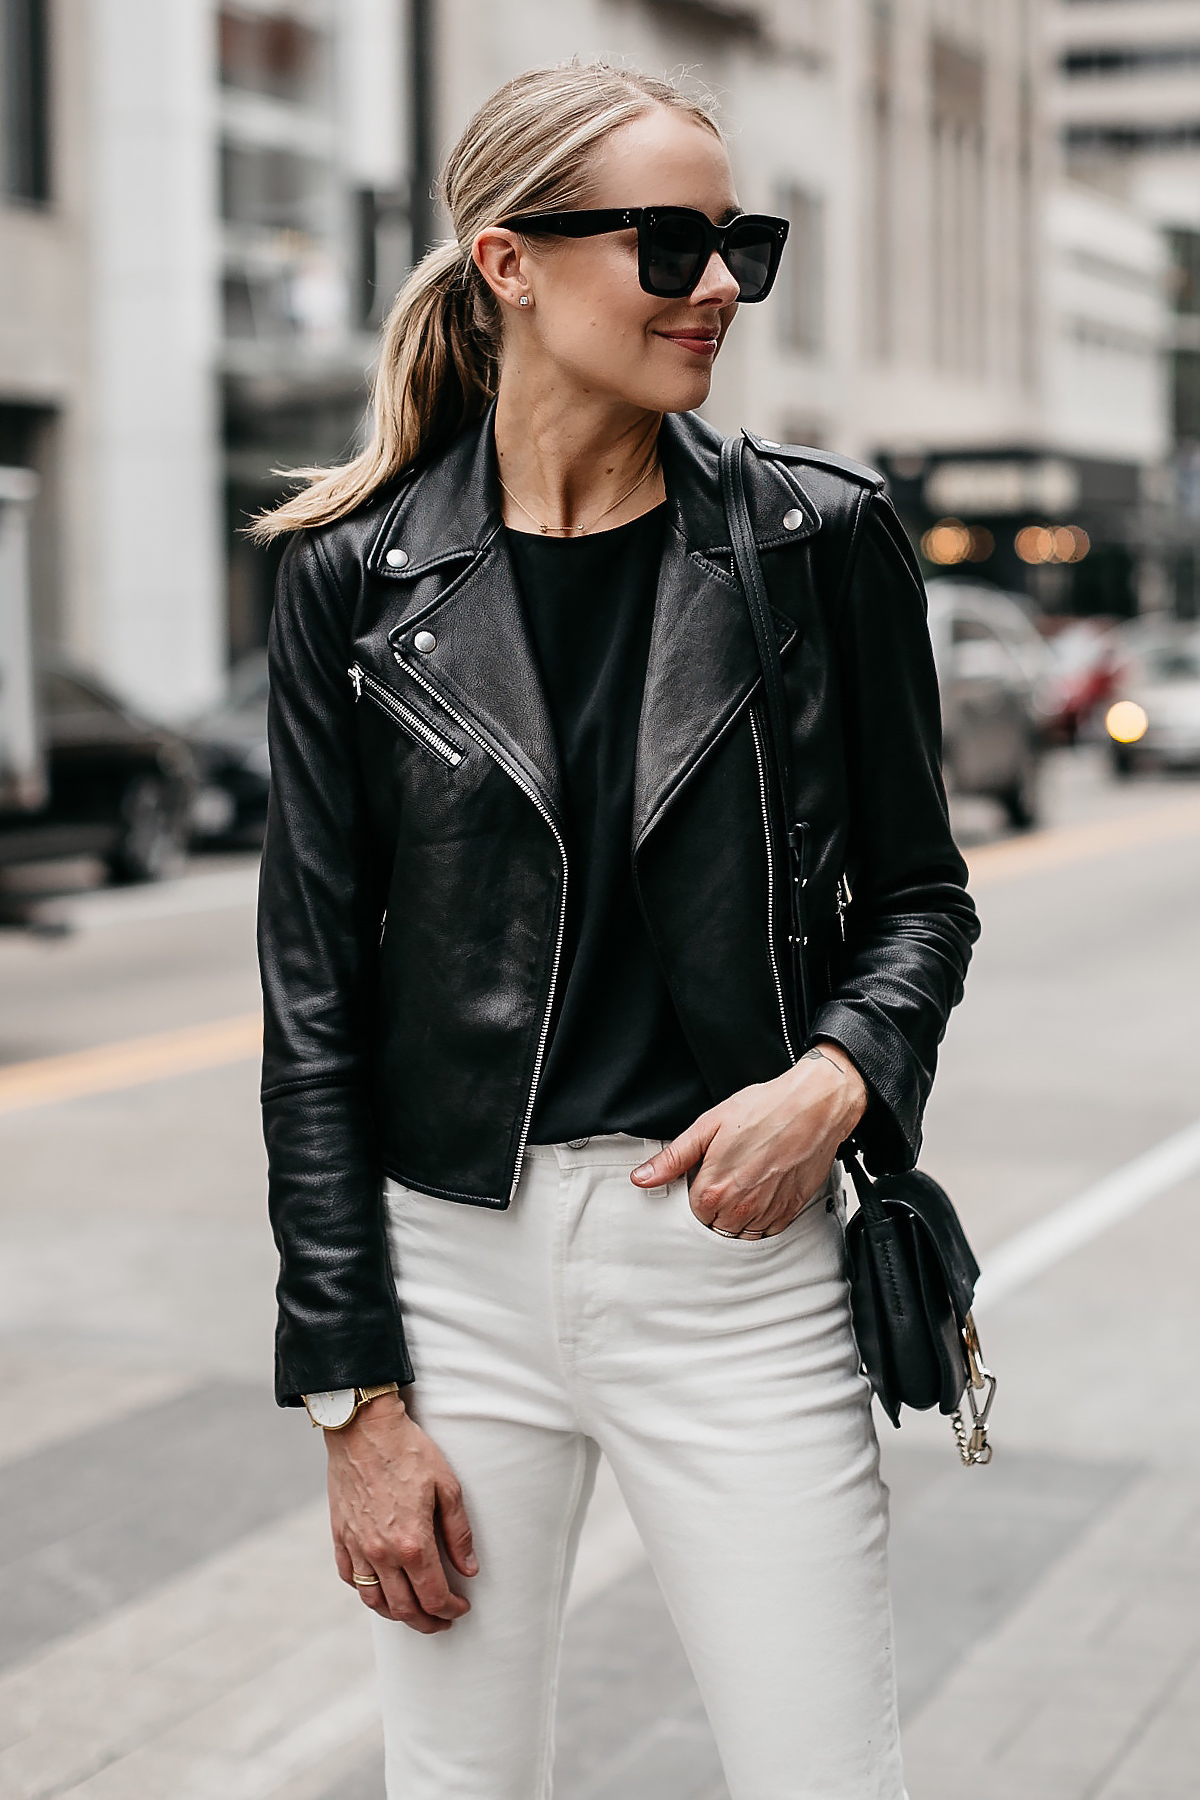 Blonde Woman Wearing Club Monaco Black Leather Jacket White Jeans Black Celine Sunglasses Fashion Jackson Dallas Blogger Fashion Blogger Street Style